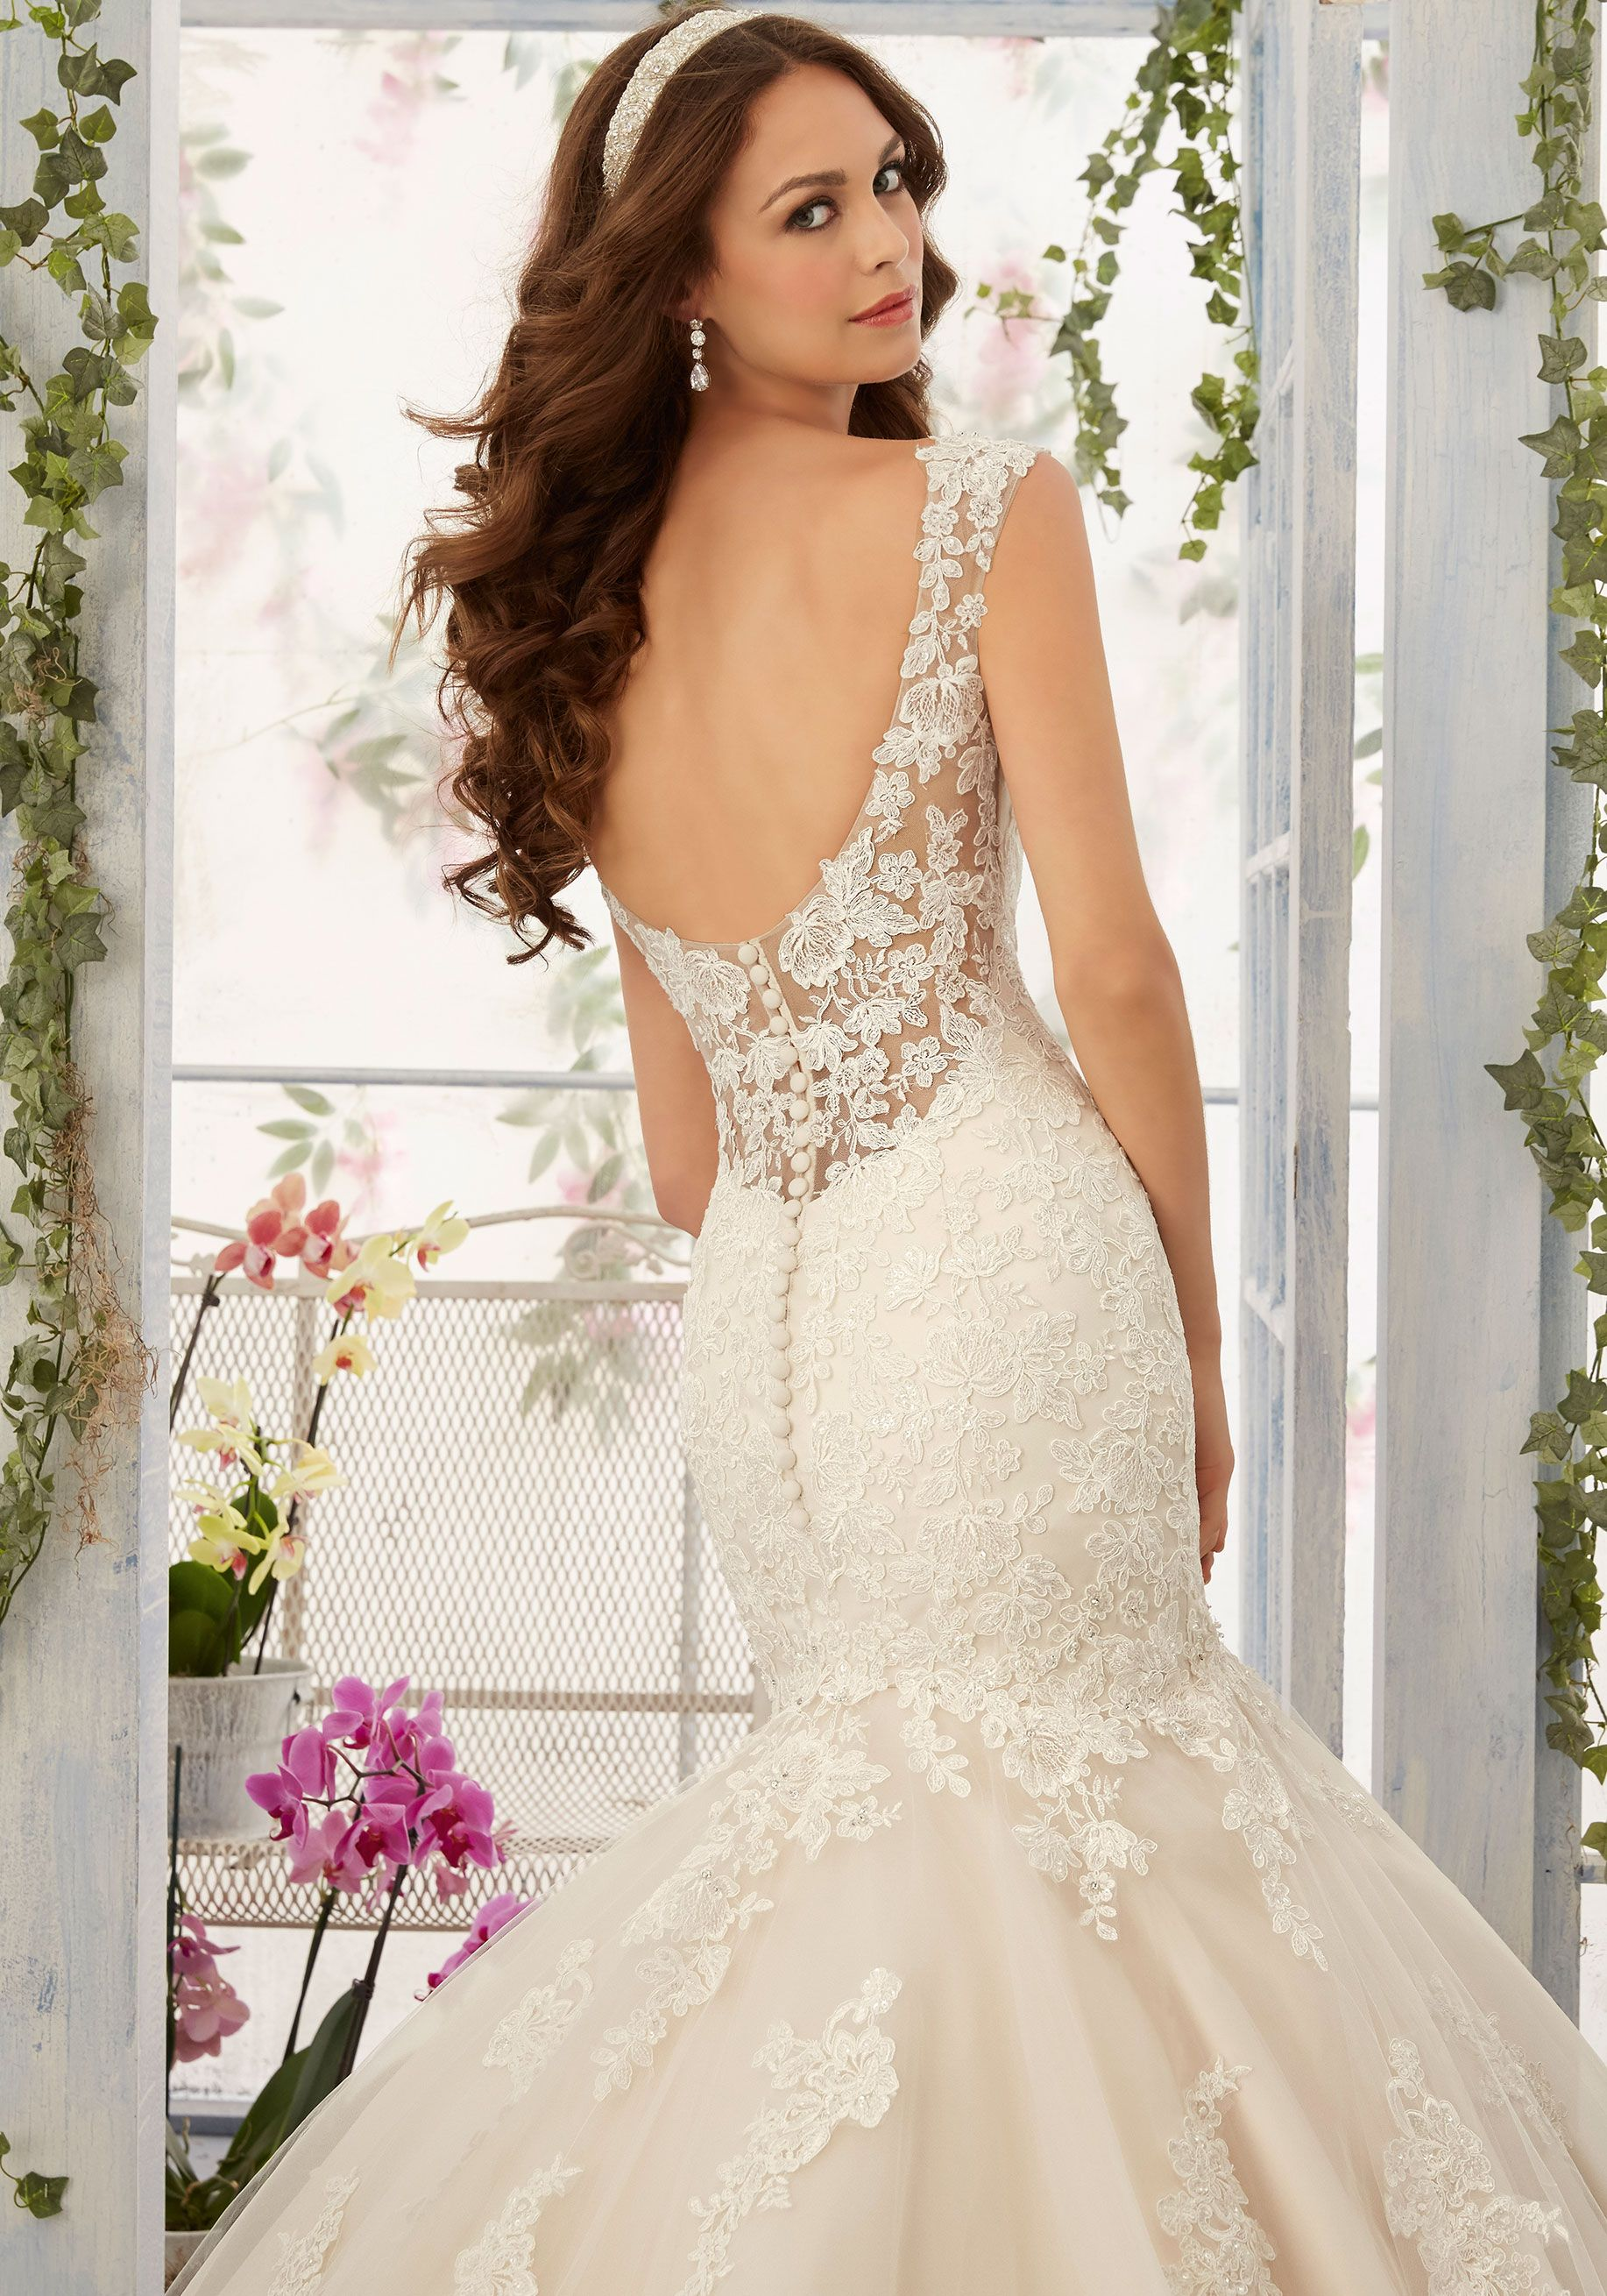 Nice Morilee Lace Appliques with Frosted Beading on Tulle Mermaid Wedding Dress It